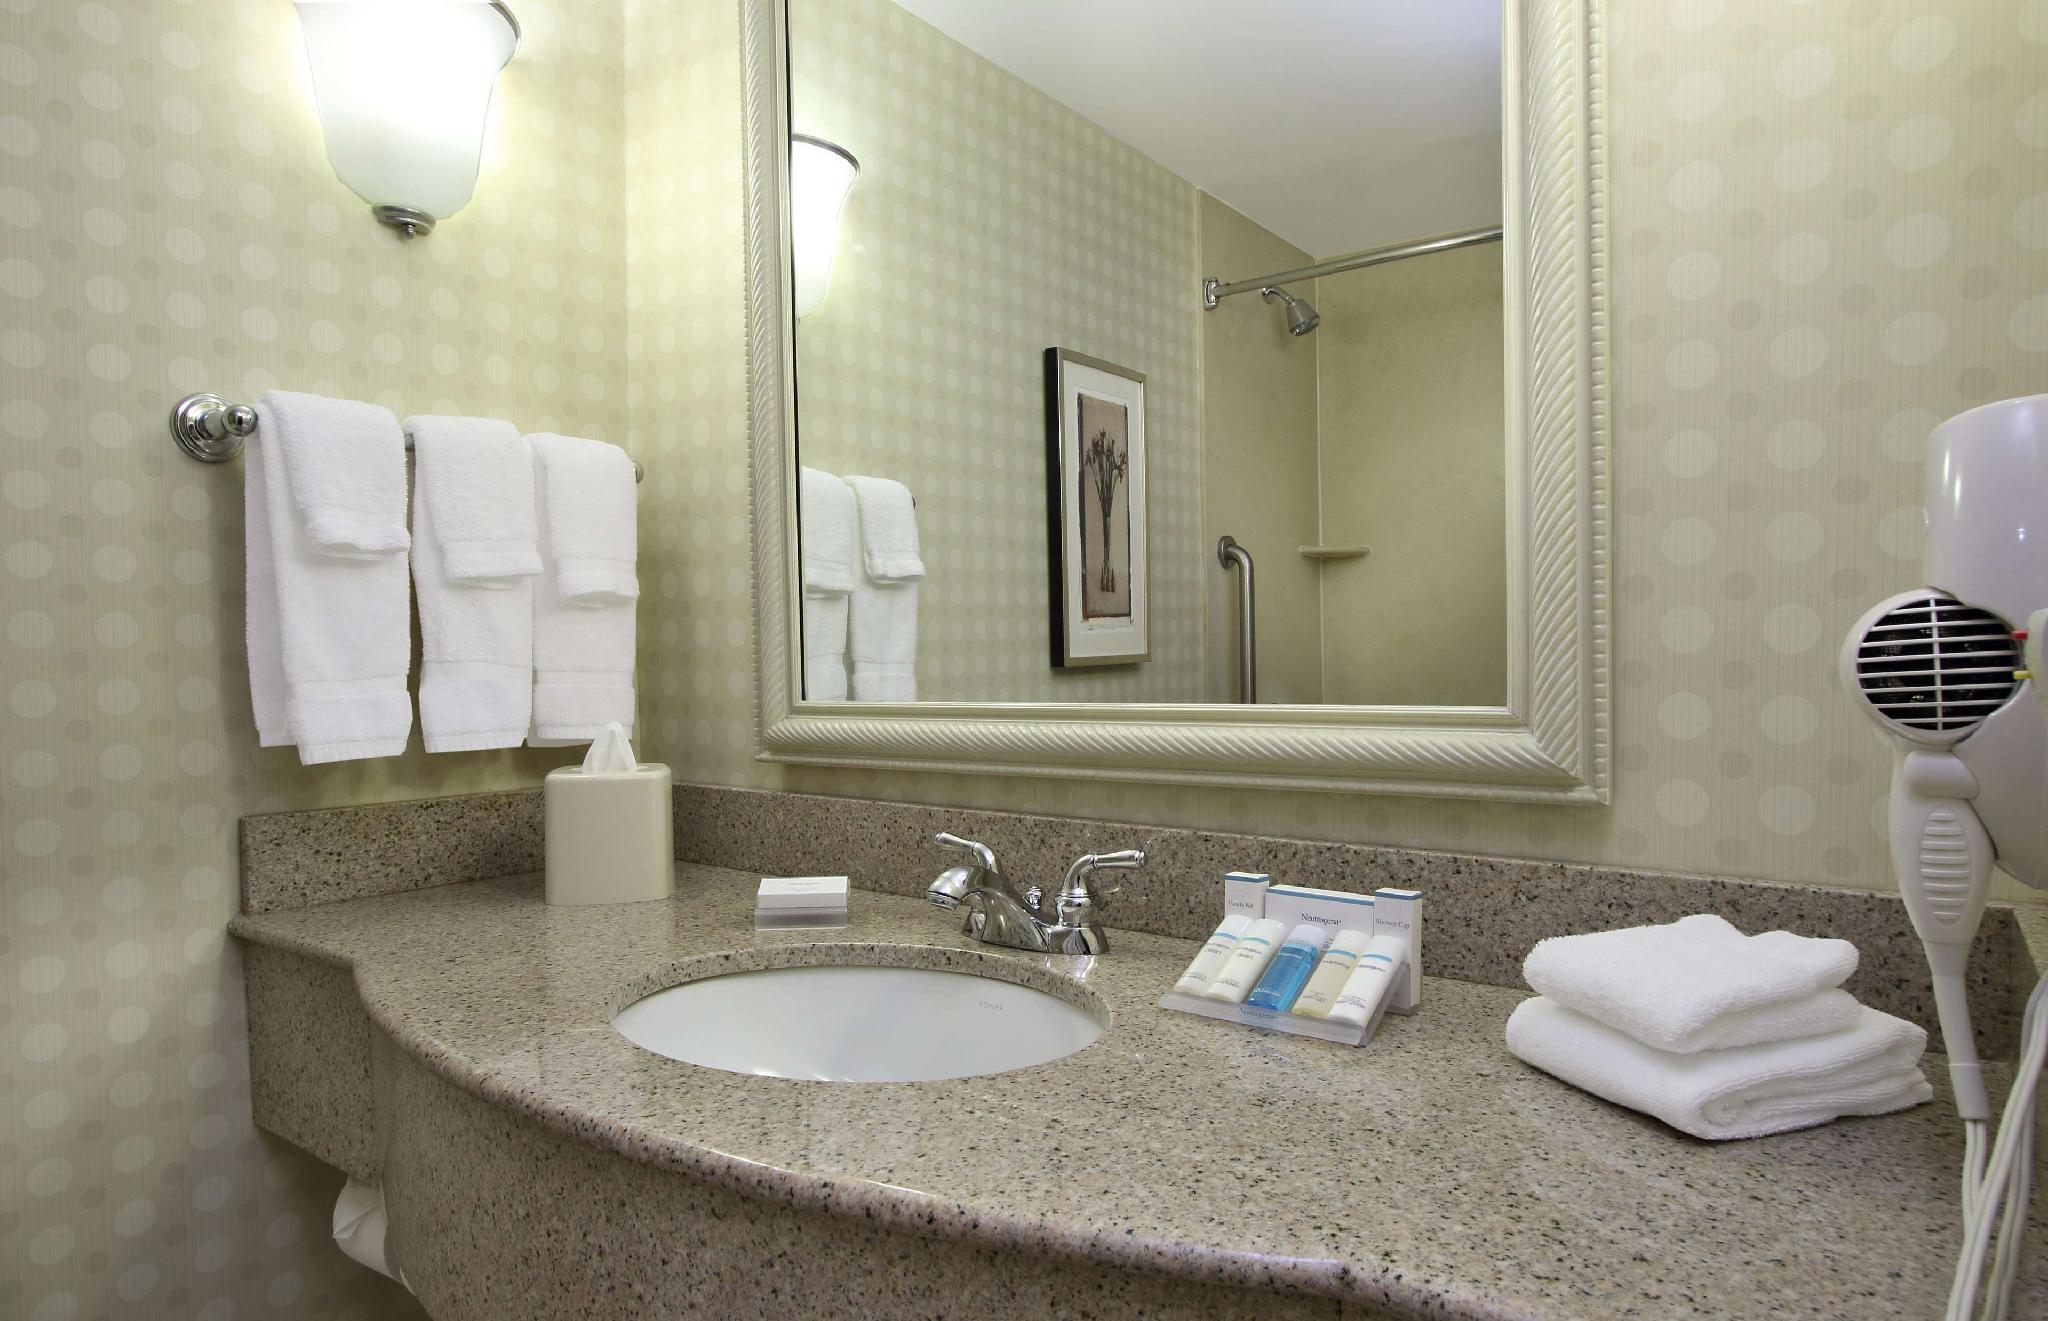 2 Queen Mobility Hearing Accessible Studio with Tub